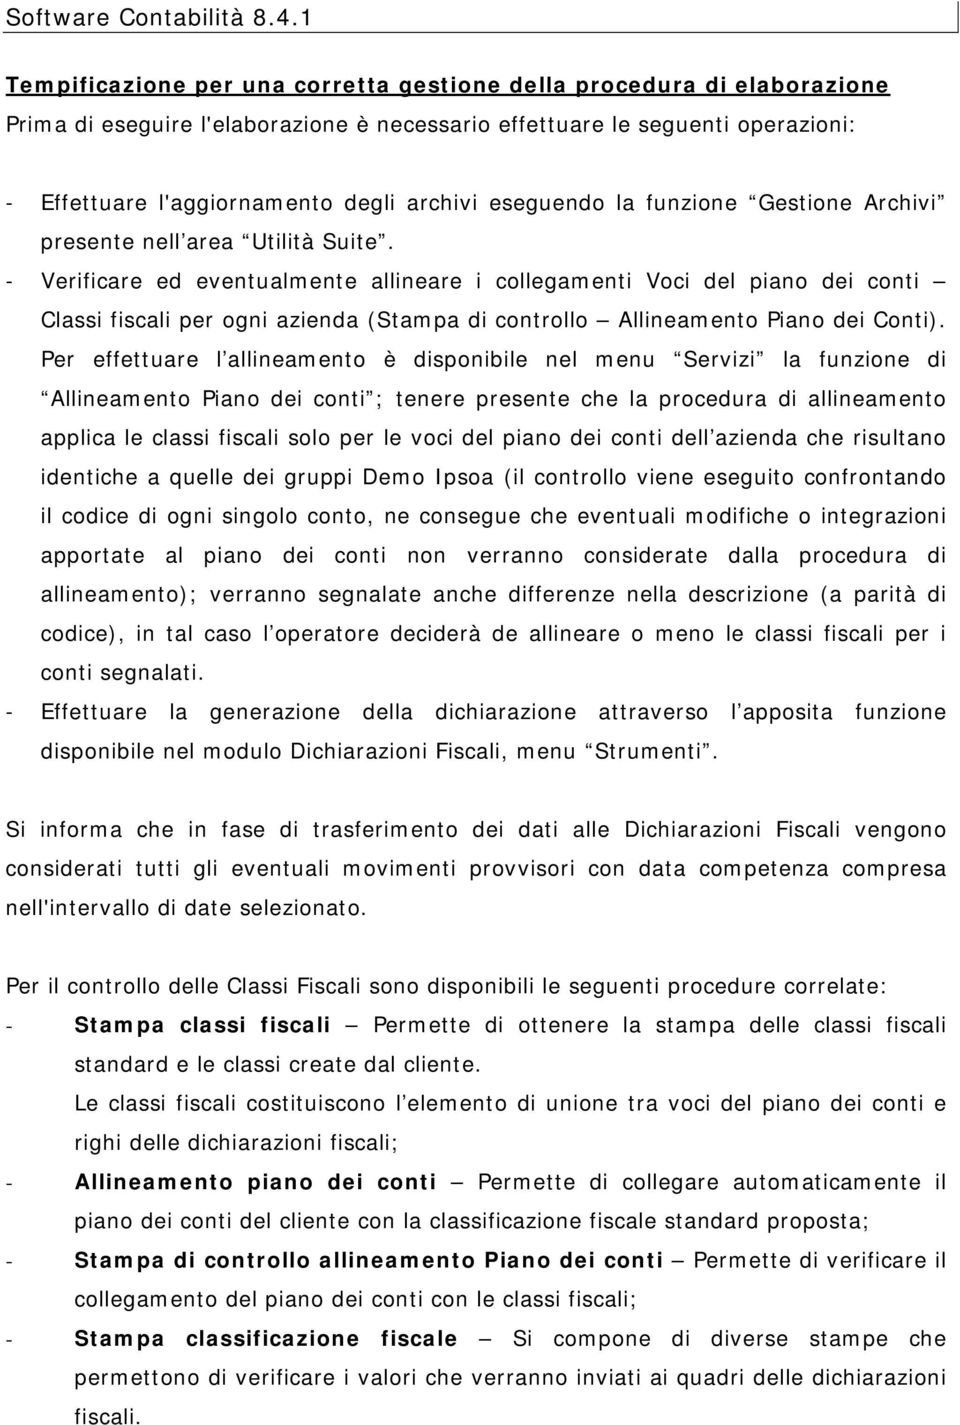 Software contabilit pdf for Software di piano planimetrico